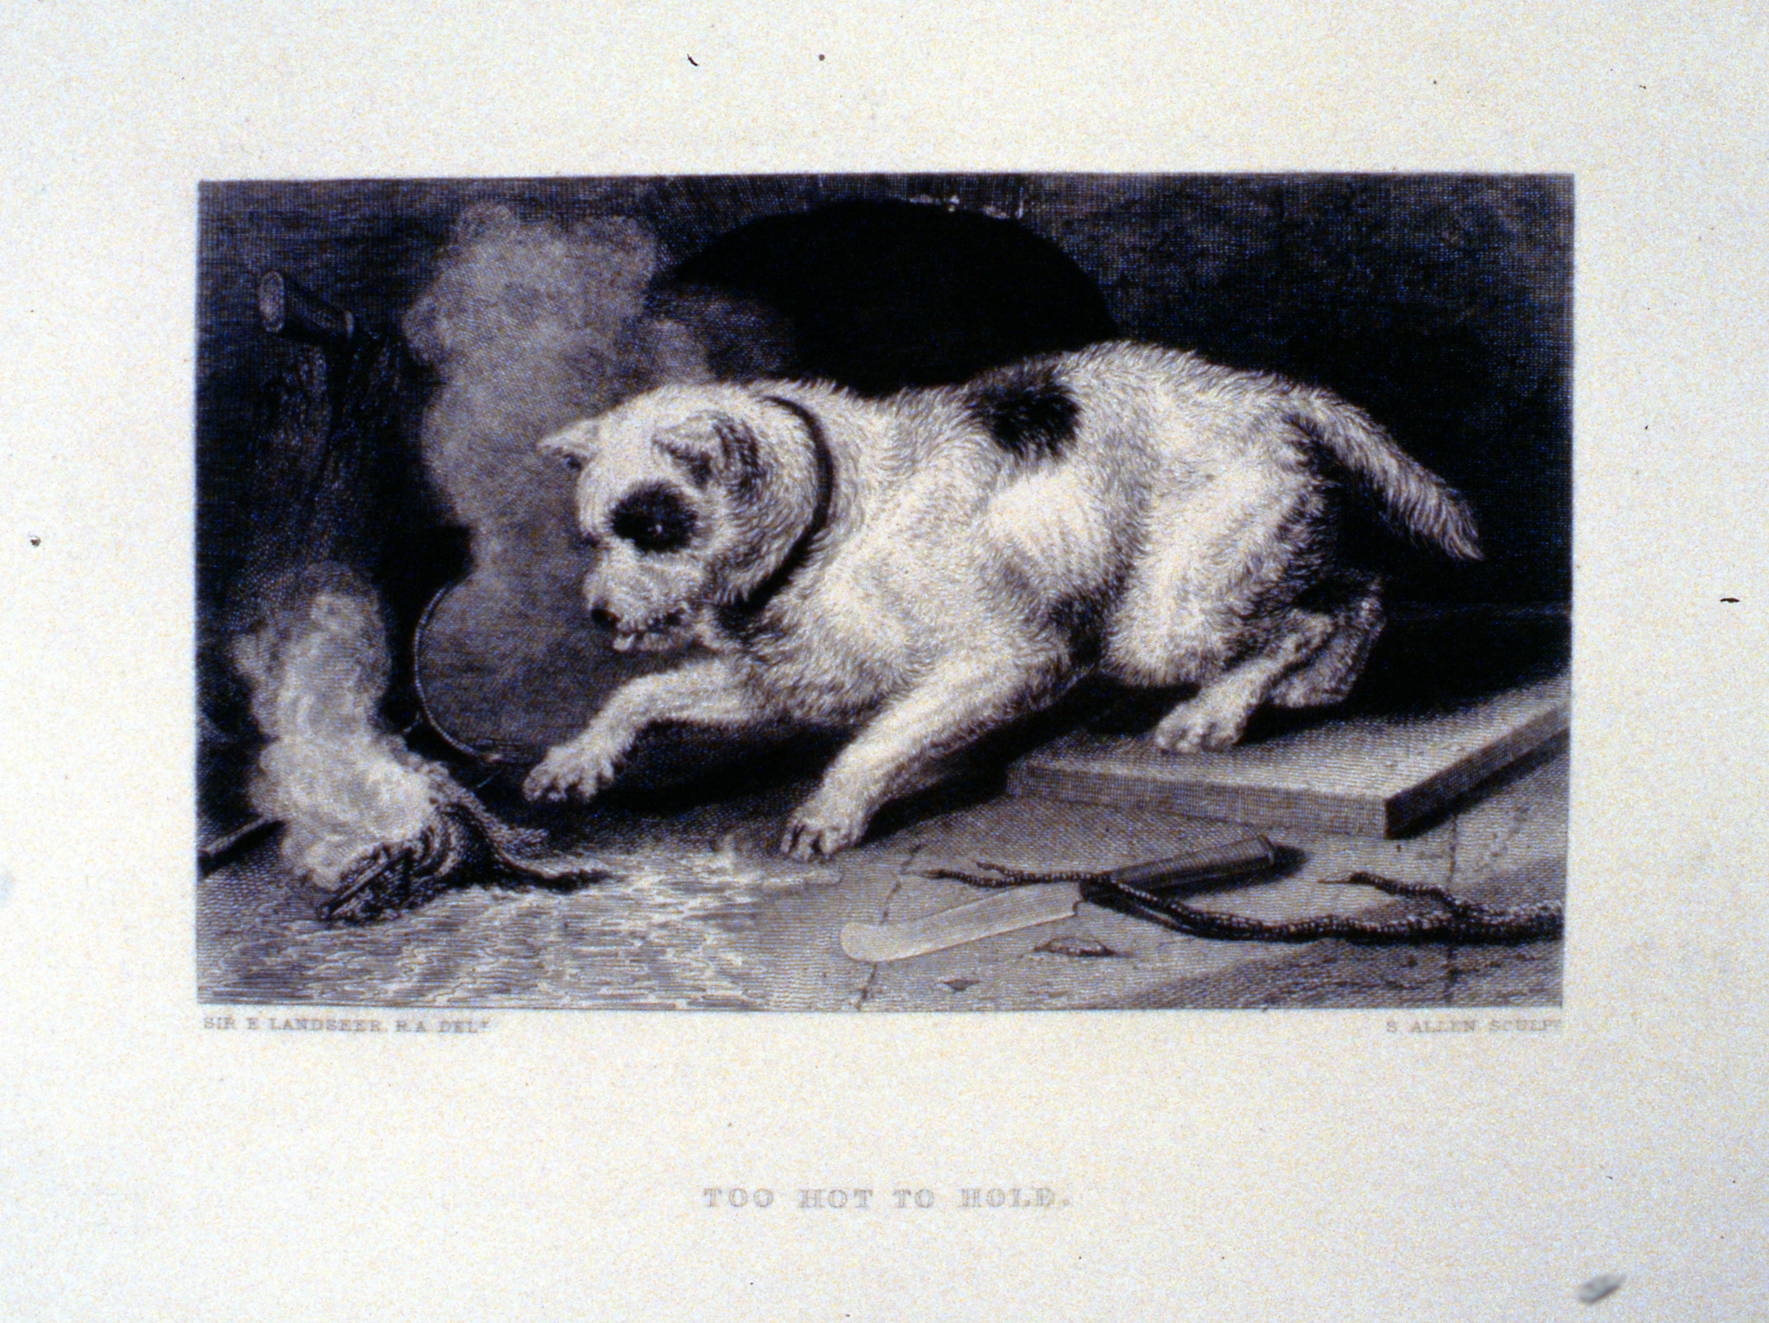 Too Hot to Hold , c. late 19th Century, S. Allen, steel engraving, 11.5 cm x 18.8 cm, 1996.08.30, gift of Yvonne Adams